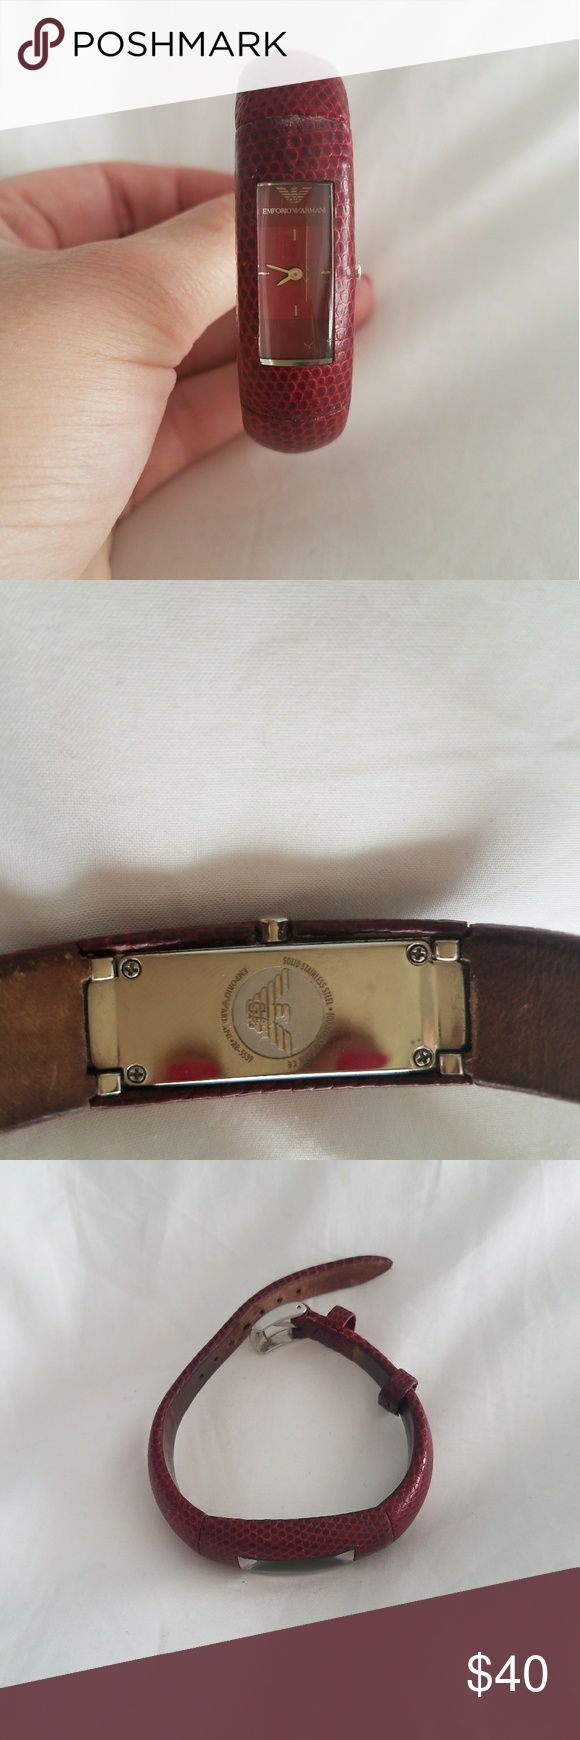 Emporio Armani Red Leather Band Watch Emporio Armani Red Leather Band Watch Emporio Armani Accessories Watches